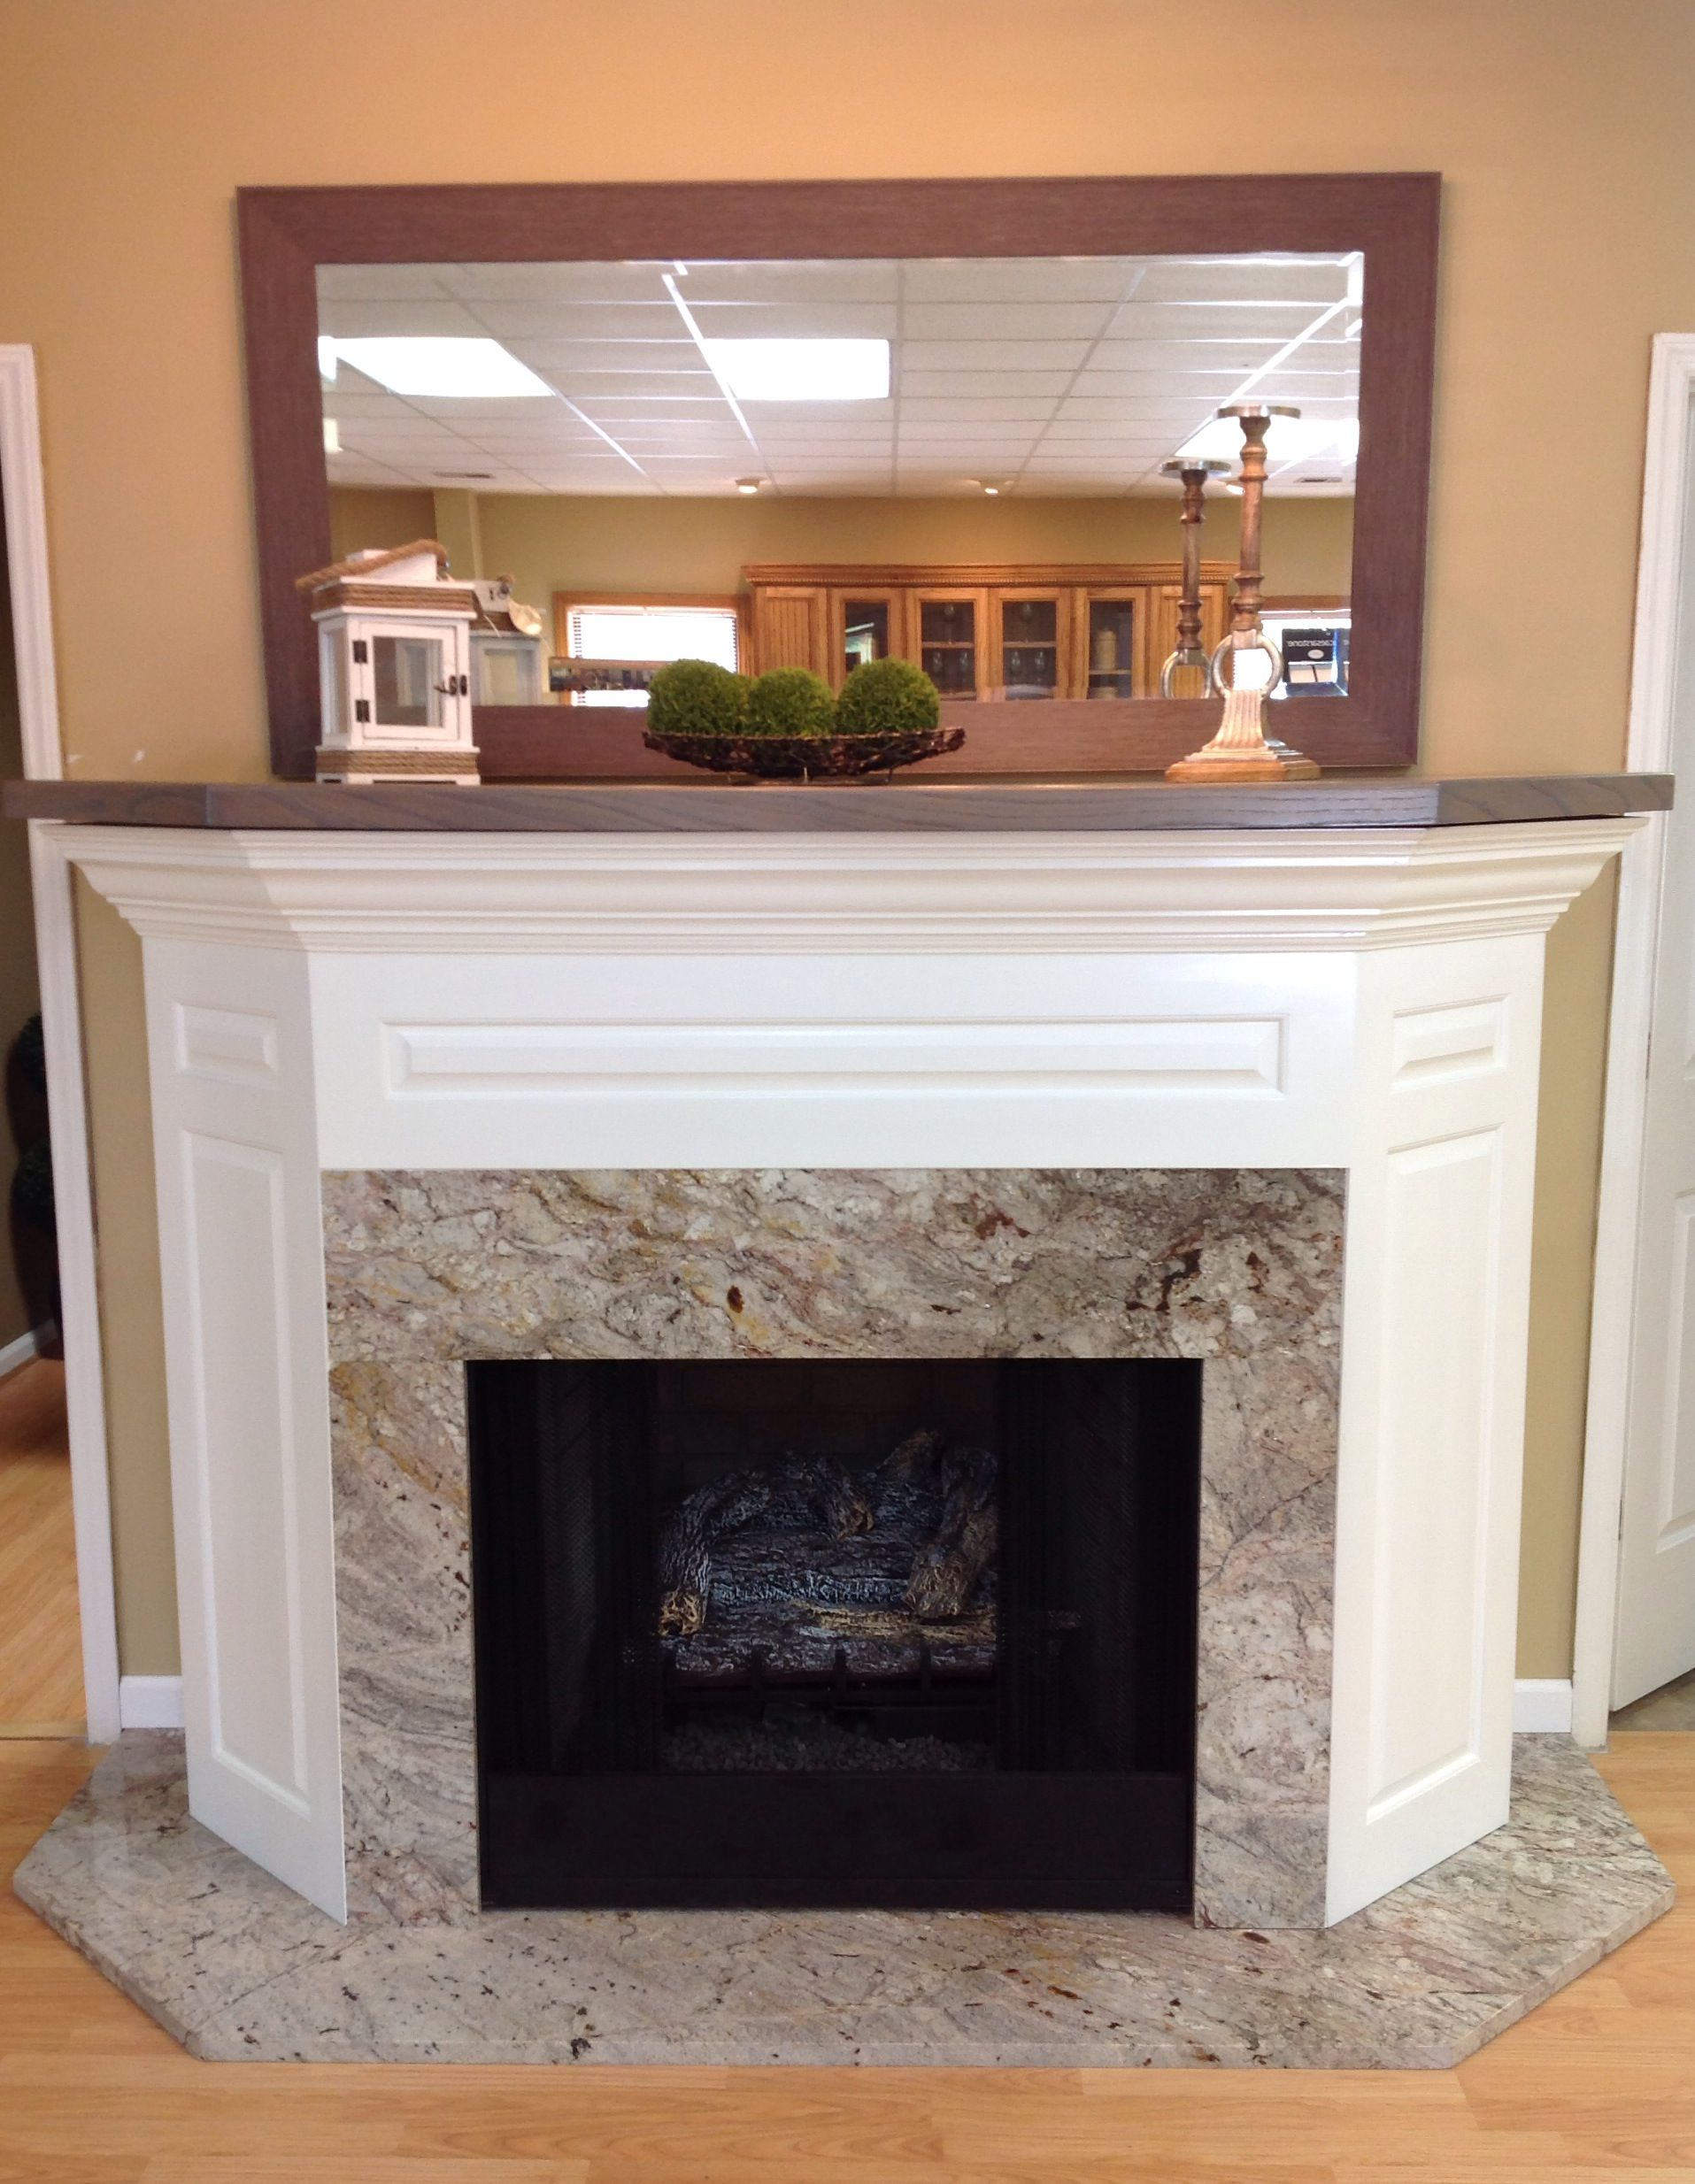 Bordeaux Dream Granite Fireplace Surround And Hearth House Ideas